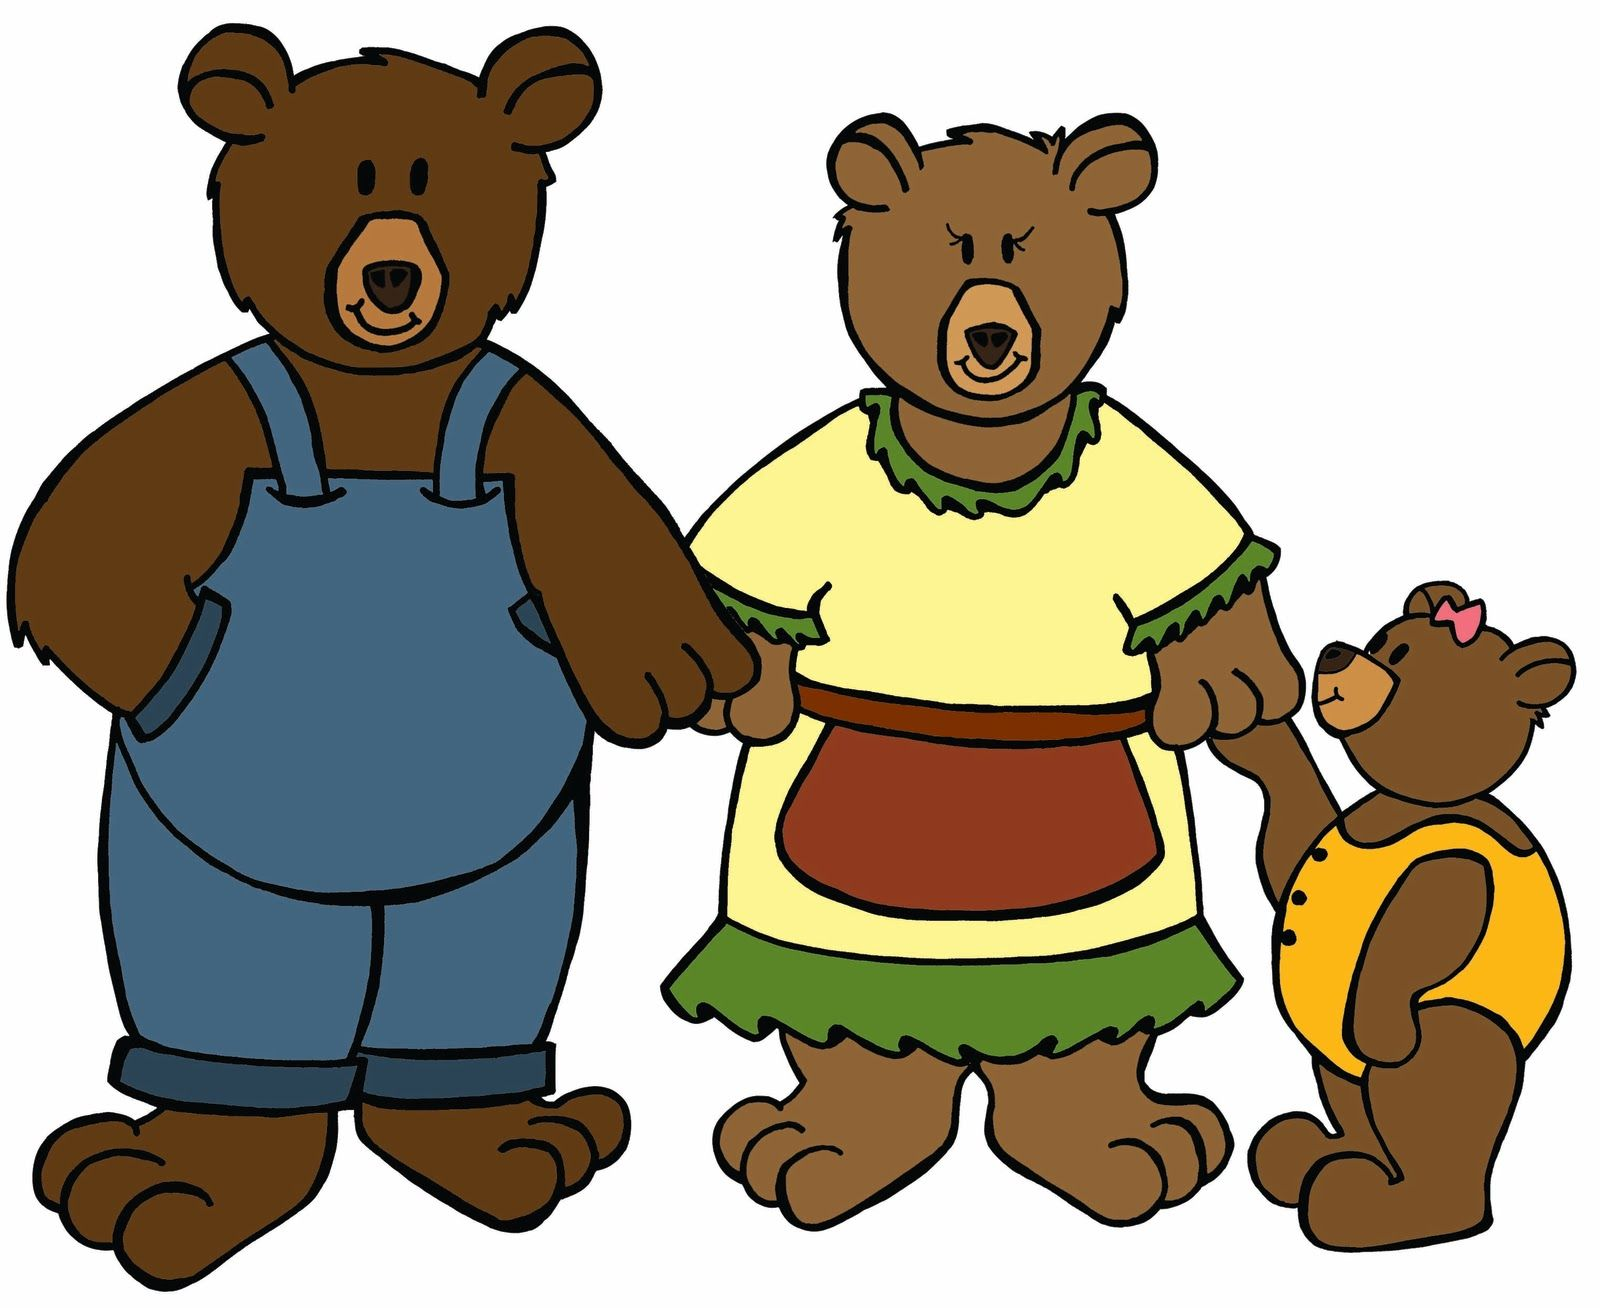 goldilocks and the three bears clipart cliparts co goudlokje en de rh pinterest com au goldilocks bears clipart goldilocks clip art free